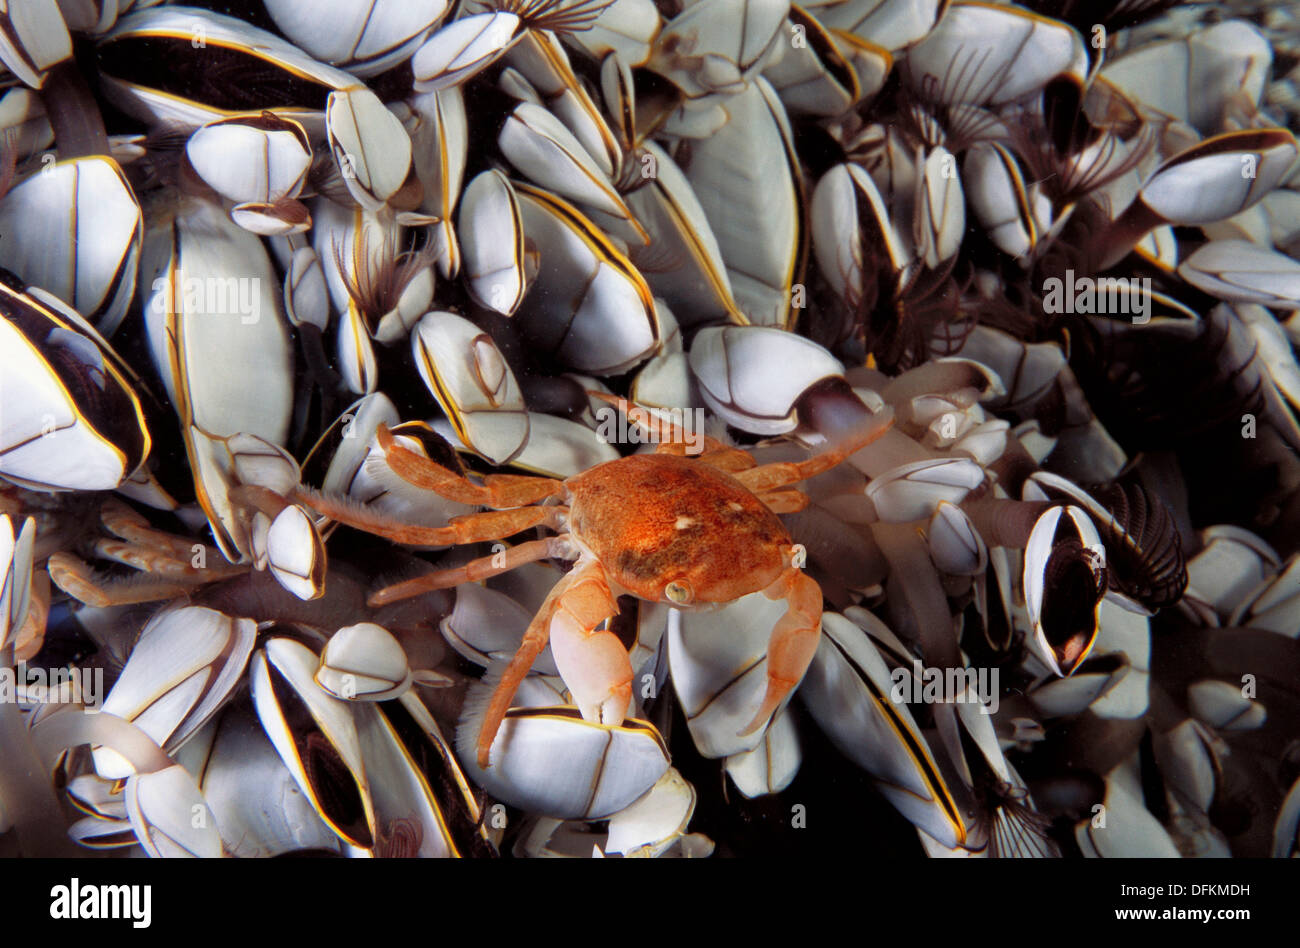 Eastern Atlantic Galicia Spain Oceanic crab in the middle of Gooseneck barnacle Pinoferes pinofrese - Stock Image